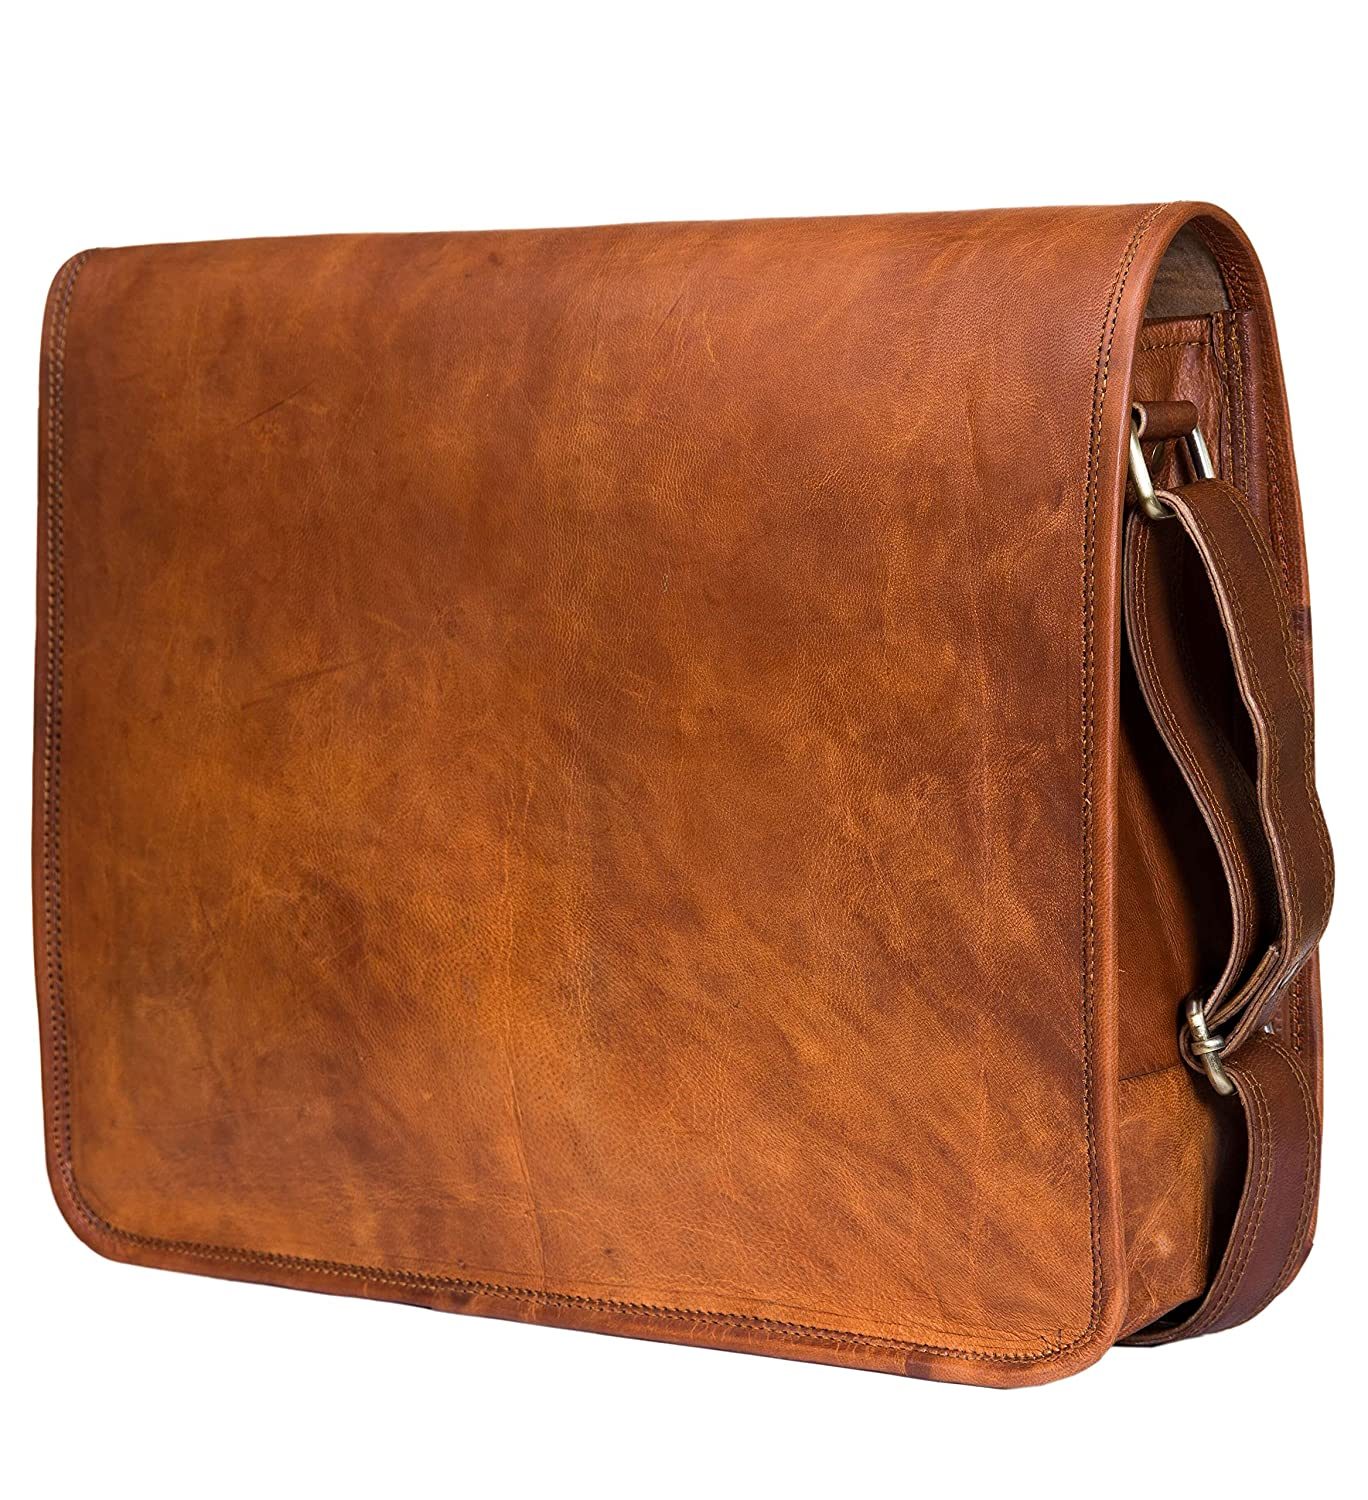 Urban Leather Handmade Over The Shoulder Laptop Bag for Men Women Boys Girls, with Shock Proof Padding, Medium Size 15 inch ULUFF16